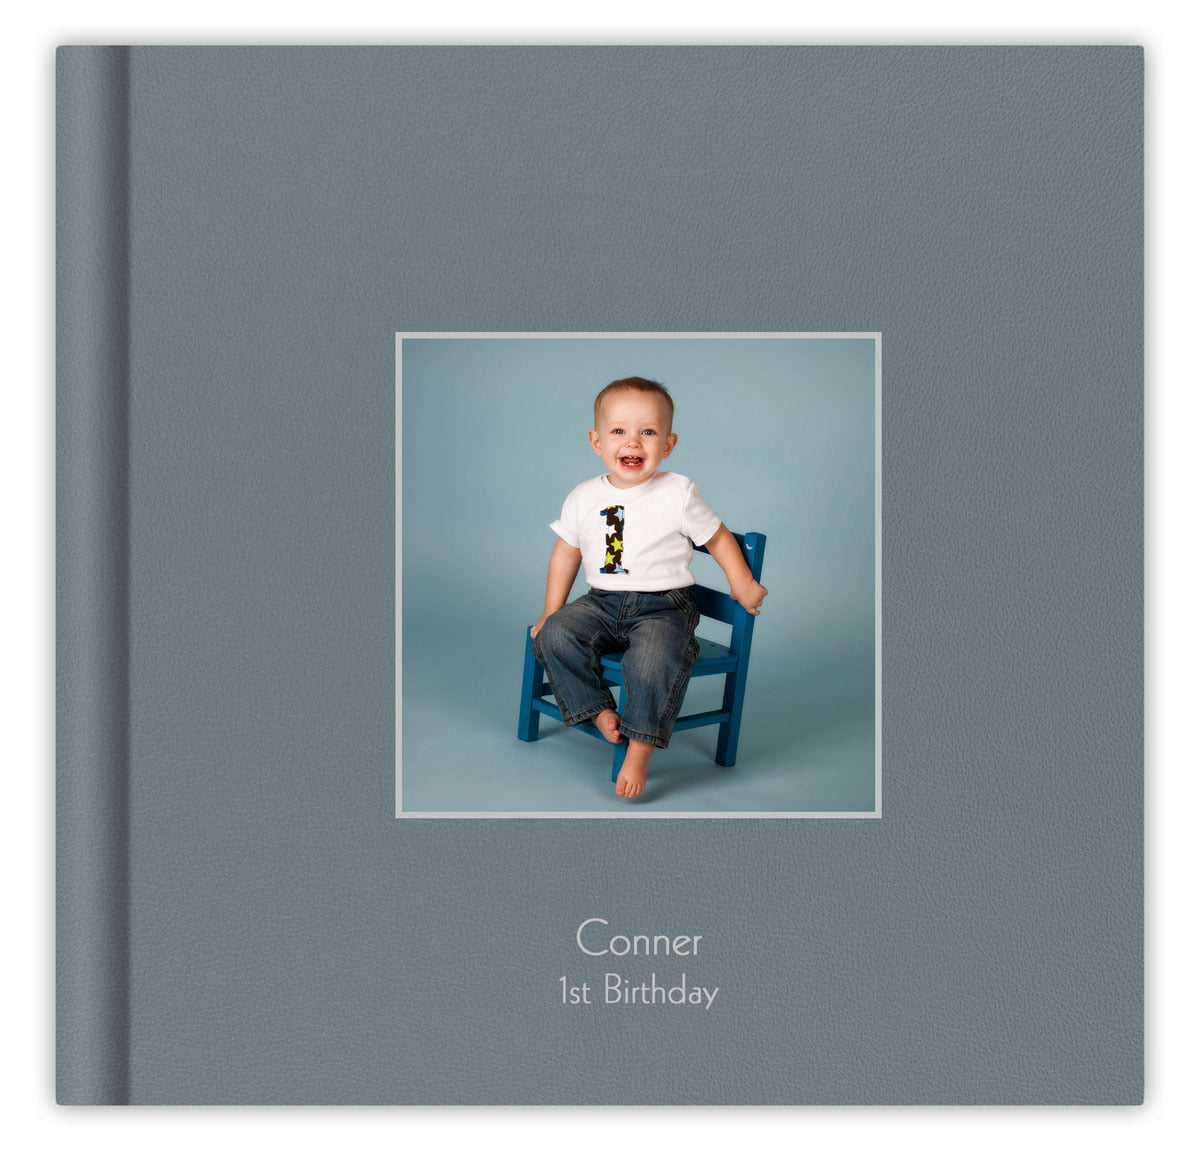 Zookbinders – PhotoBook Plus with Cameo Cover